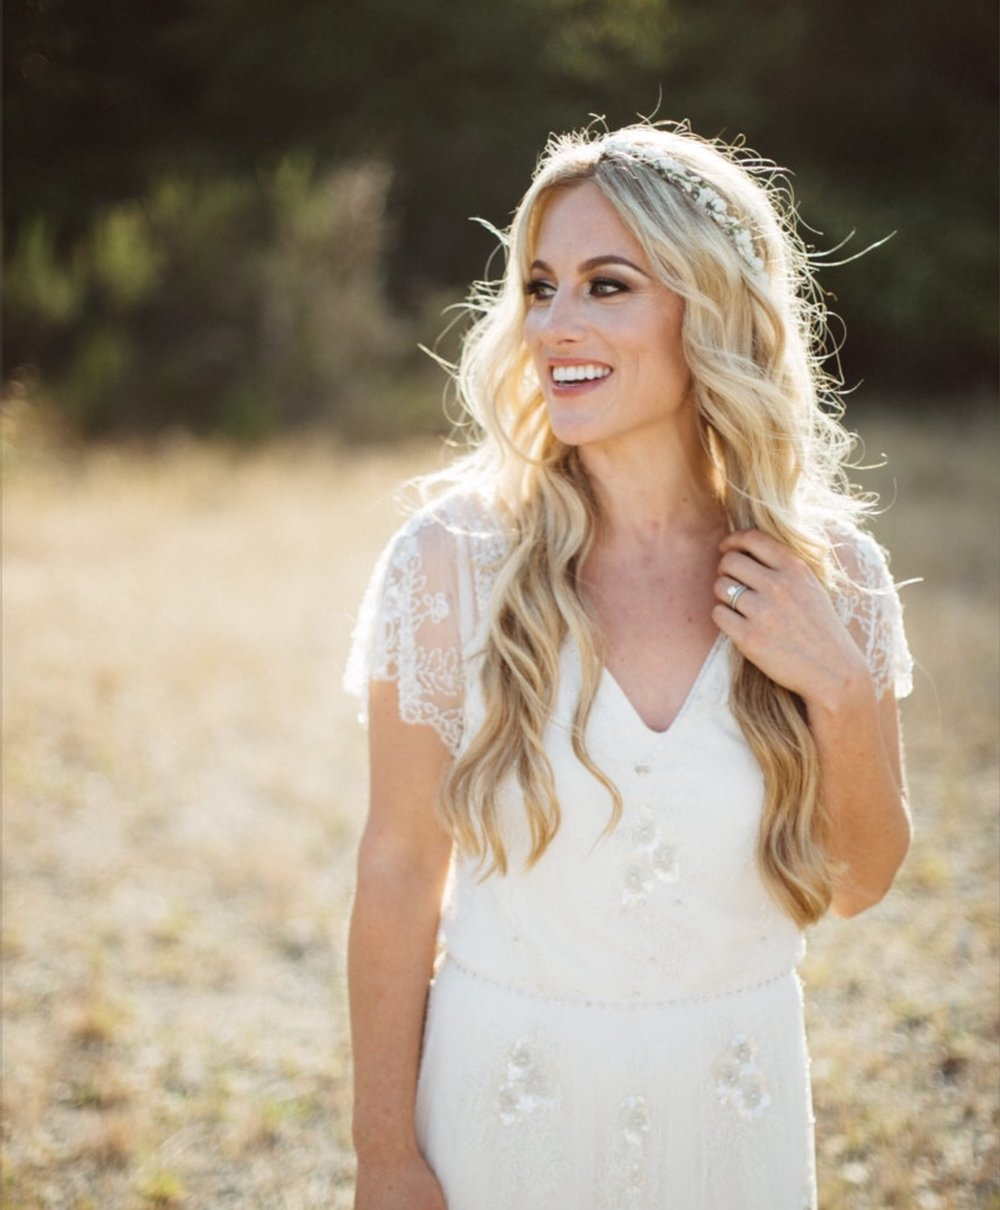 beautiful Bohemian  bride kim kish  CREDIT PHOTOGRAPHER SPARKSFLYPHOTOGRAPHY   makeup by : vina gisella